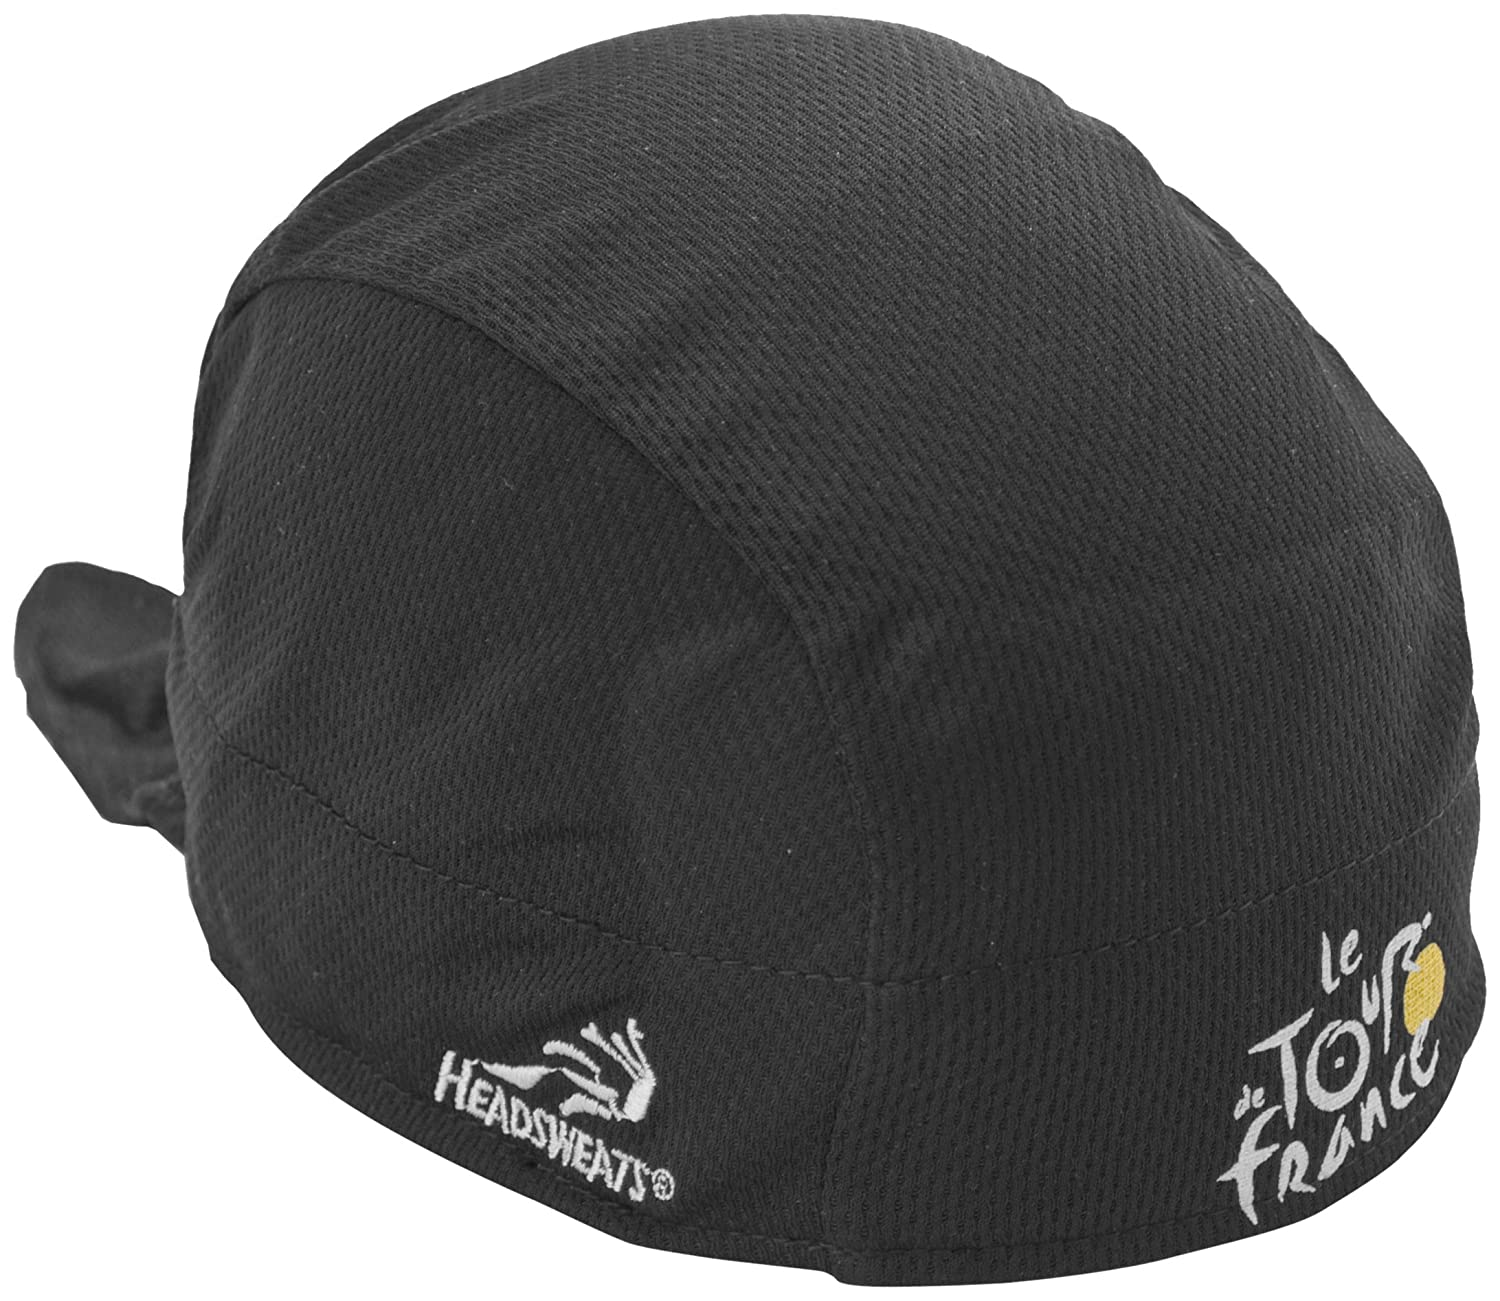 09541ab76fc Amazon.com  Headsweats Tour de France Performance Shorty Cycling Skull Cap